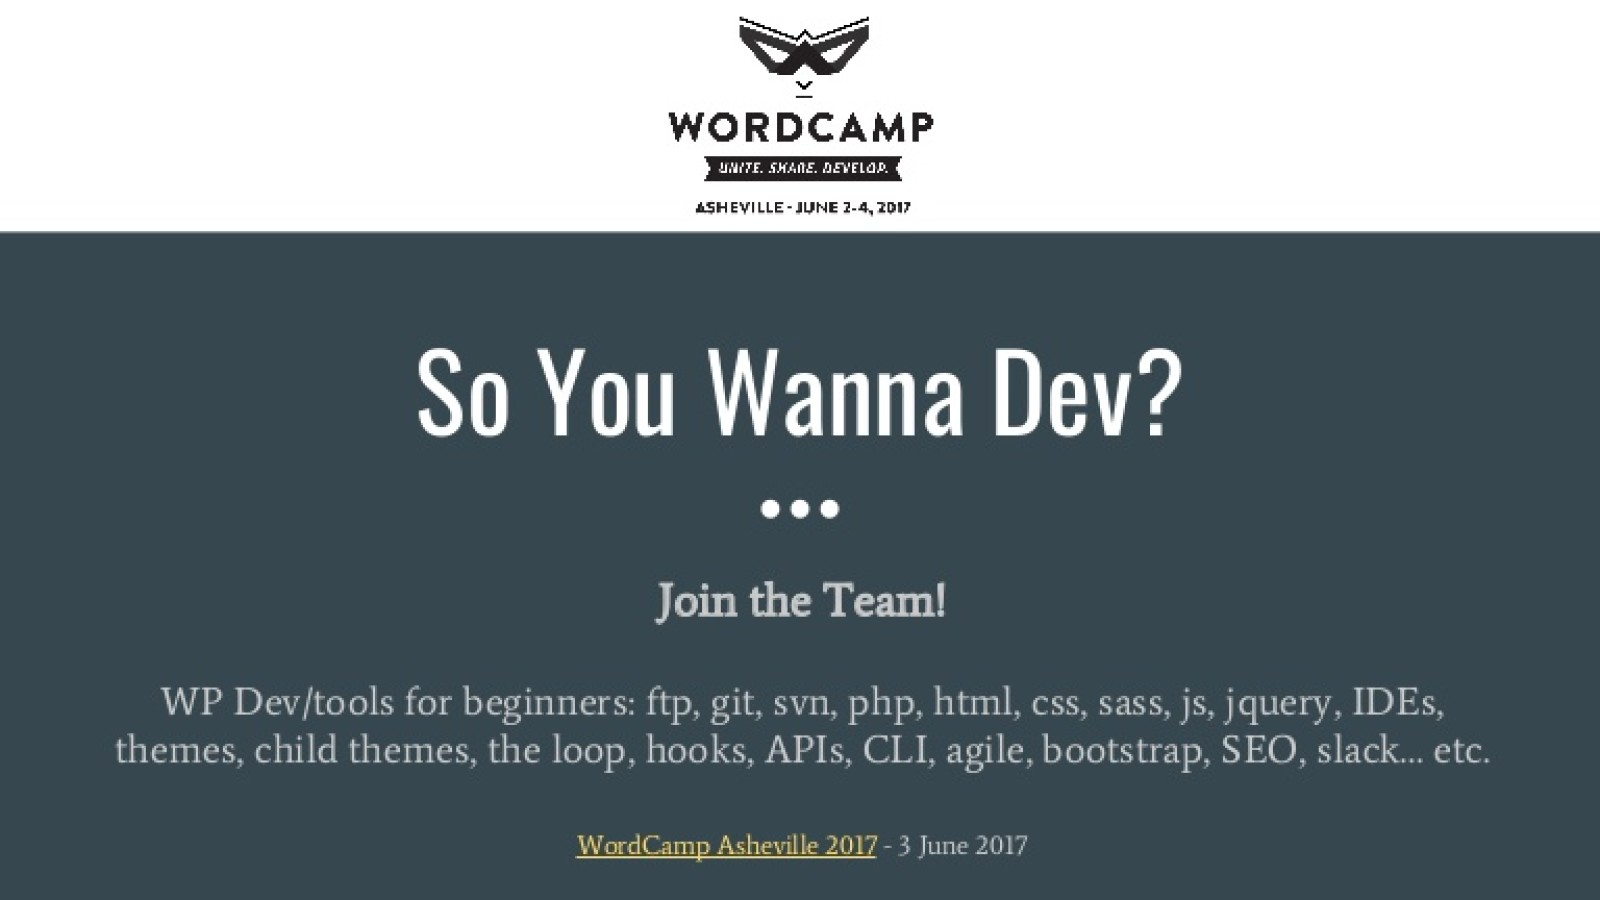 WP Development for Beginners: So, You Wanna Dev? Join the Team!